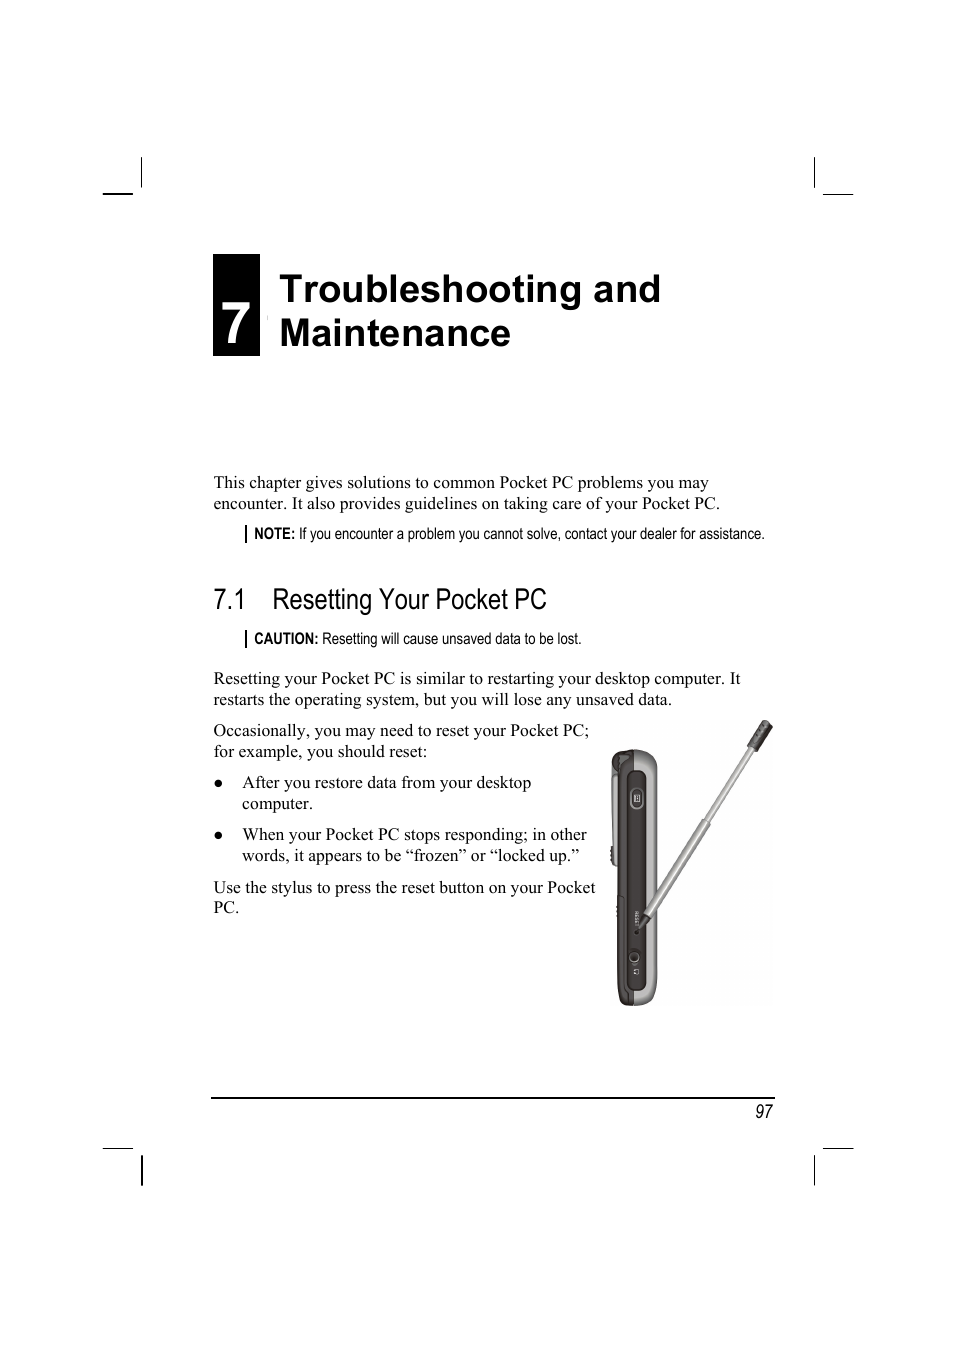 7 troubleshooting and maintenance, 1 resetting your pocket pc, Resetting  your pocket pc  